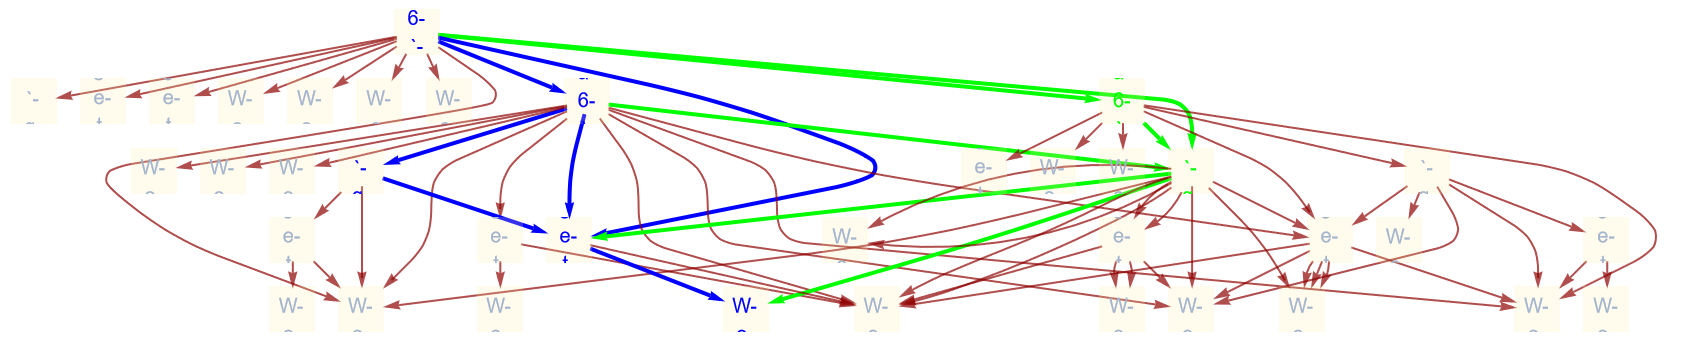 CausalMultiwaySystem showing homotopic paths that lead to trivial fundamental groupoids